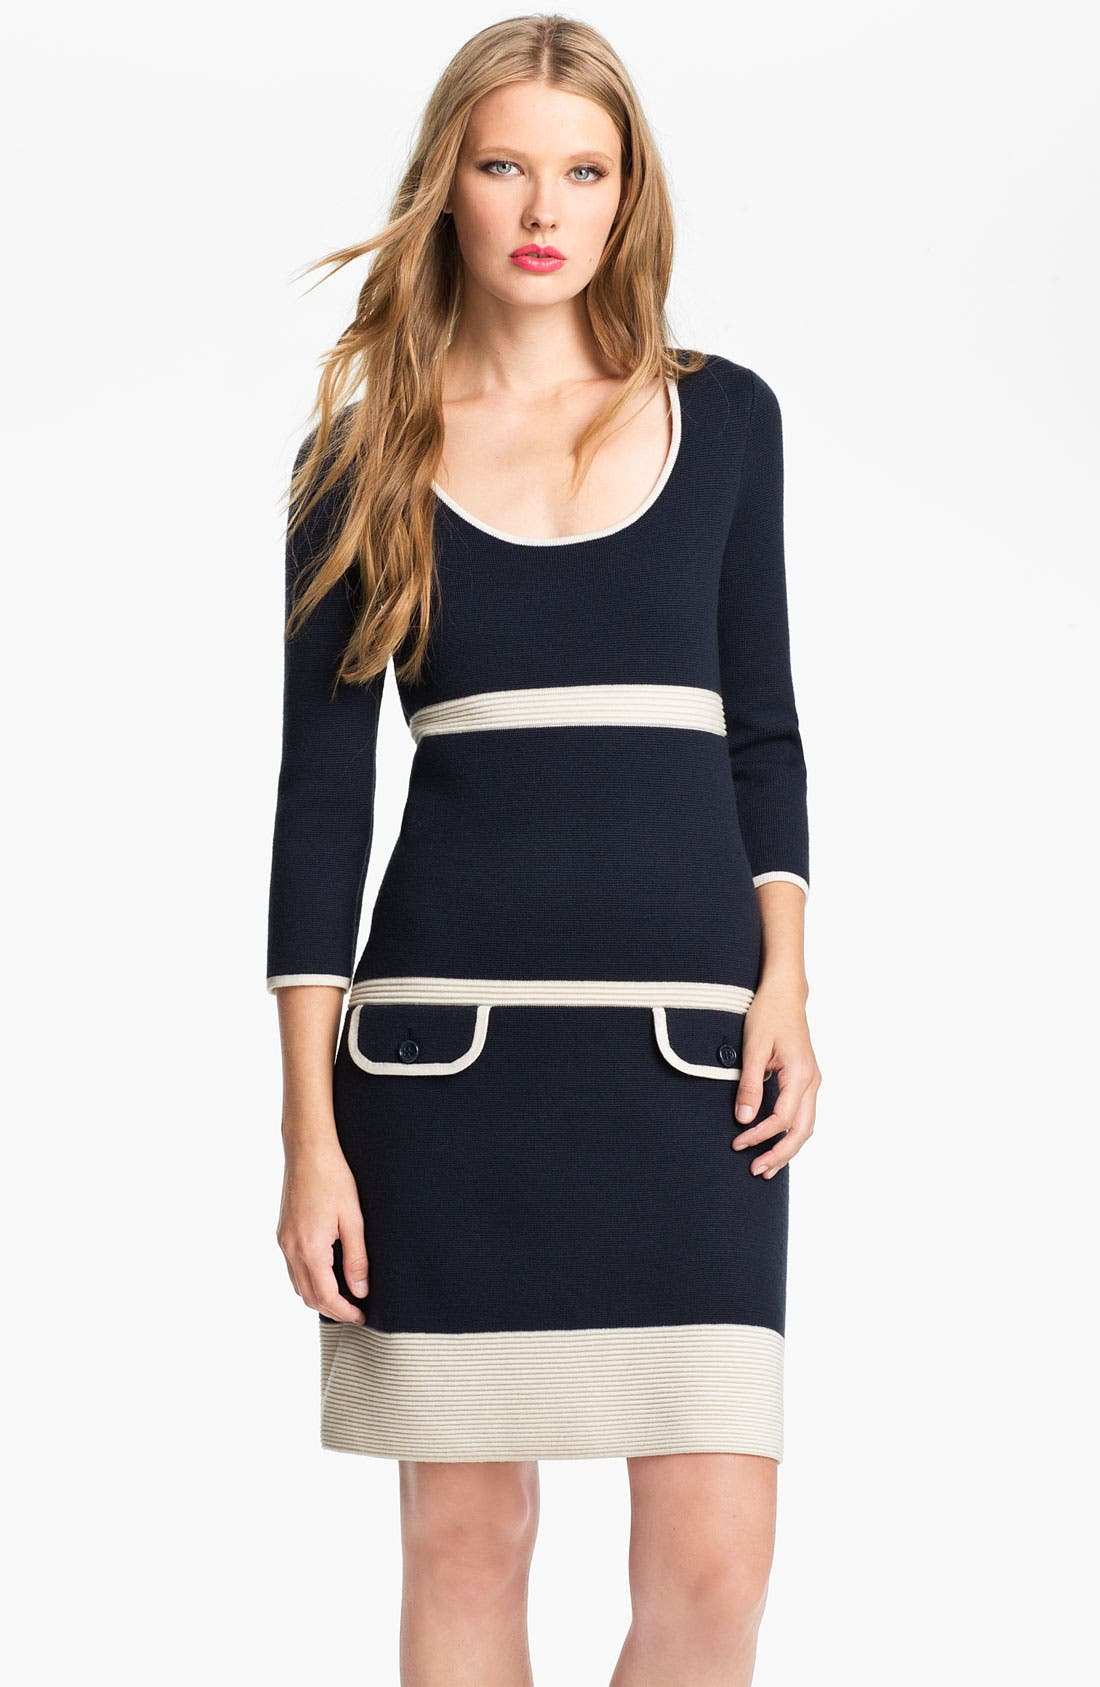 Main Image - kate spade new york 'cathie' merino wool sweater dress